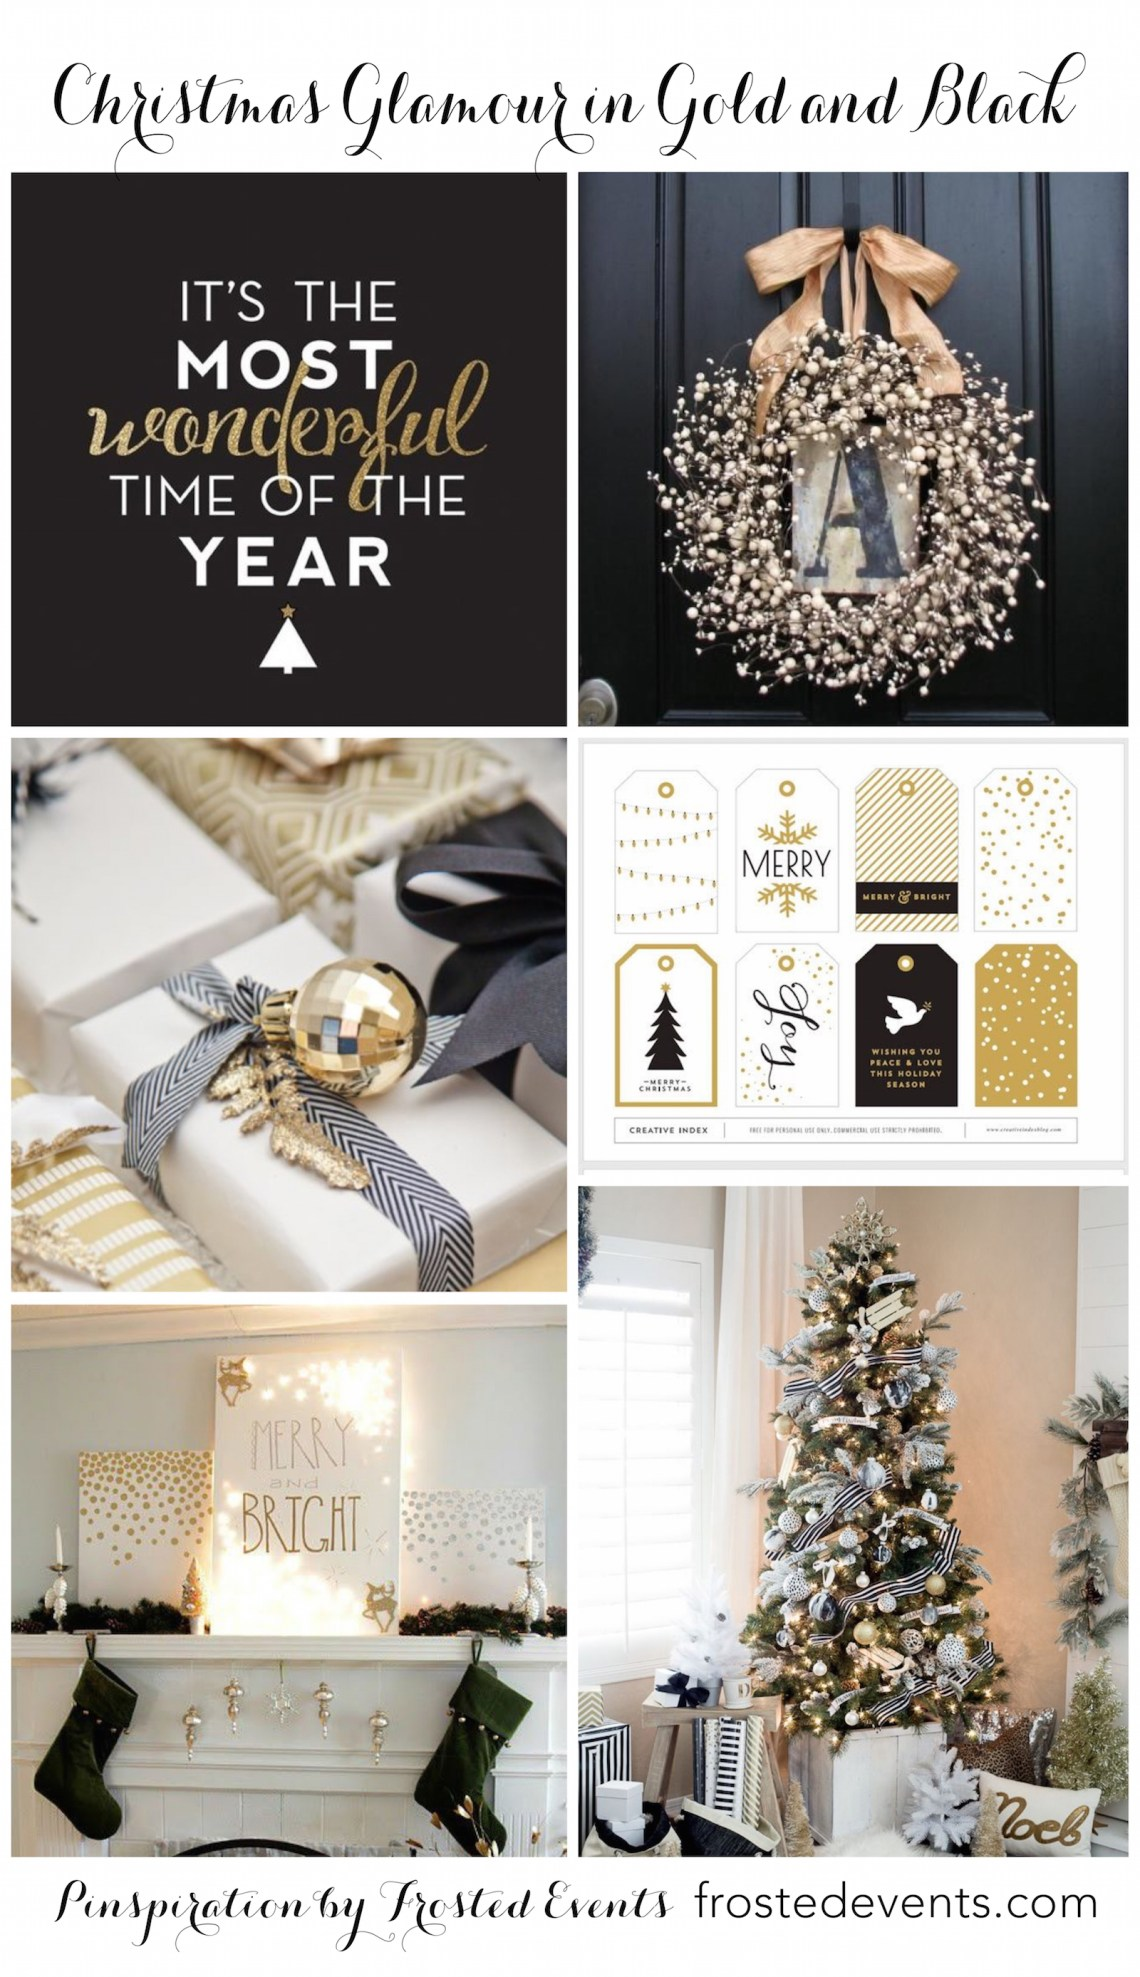 Christmas Decorating Ideas and Inspiration Black and Gold Glam frostedevents.com